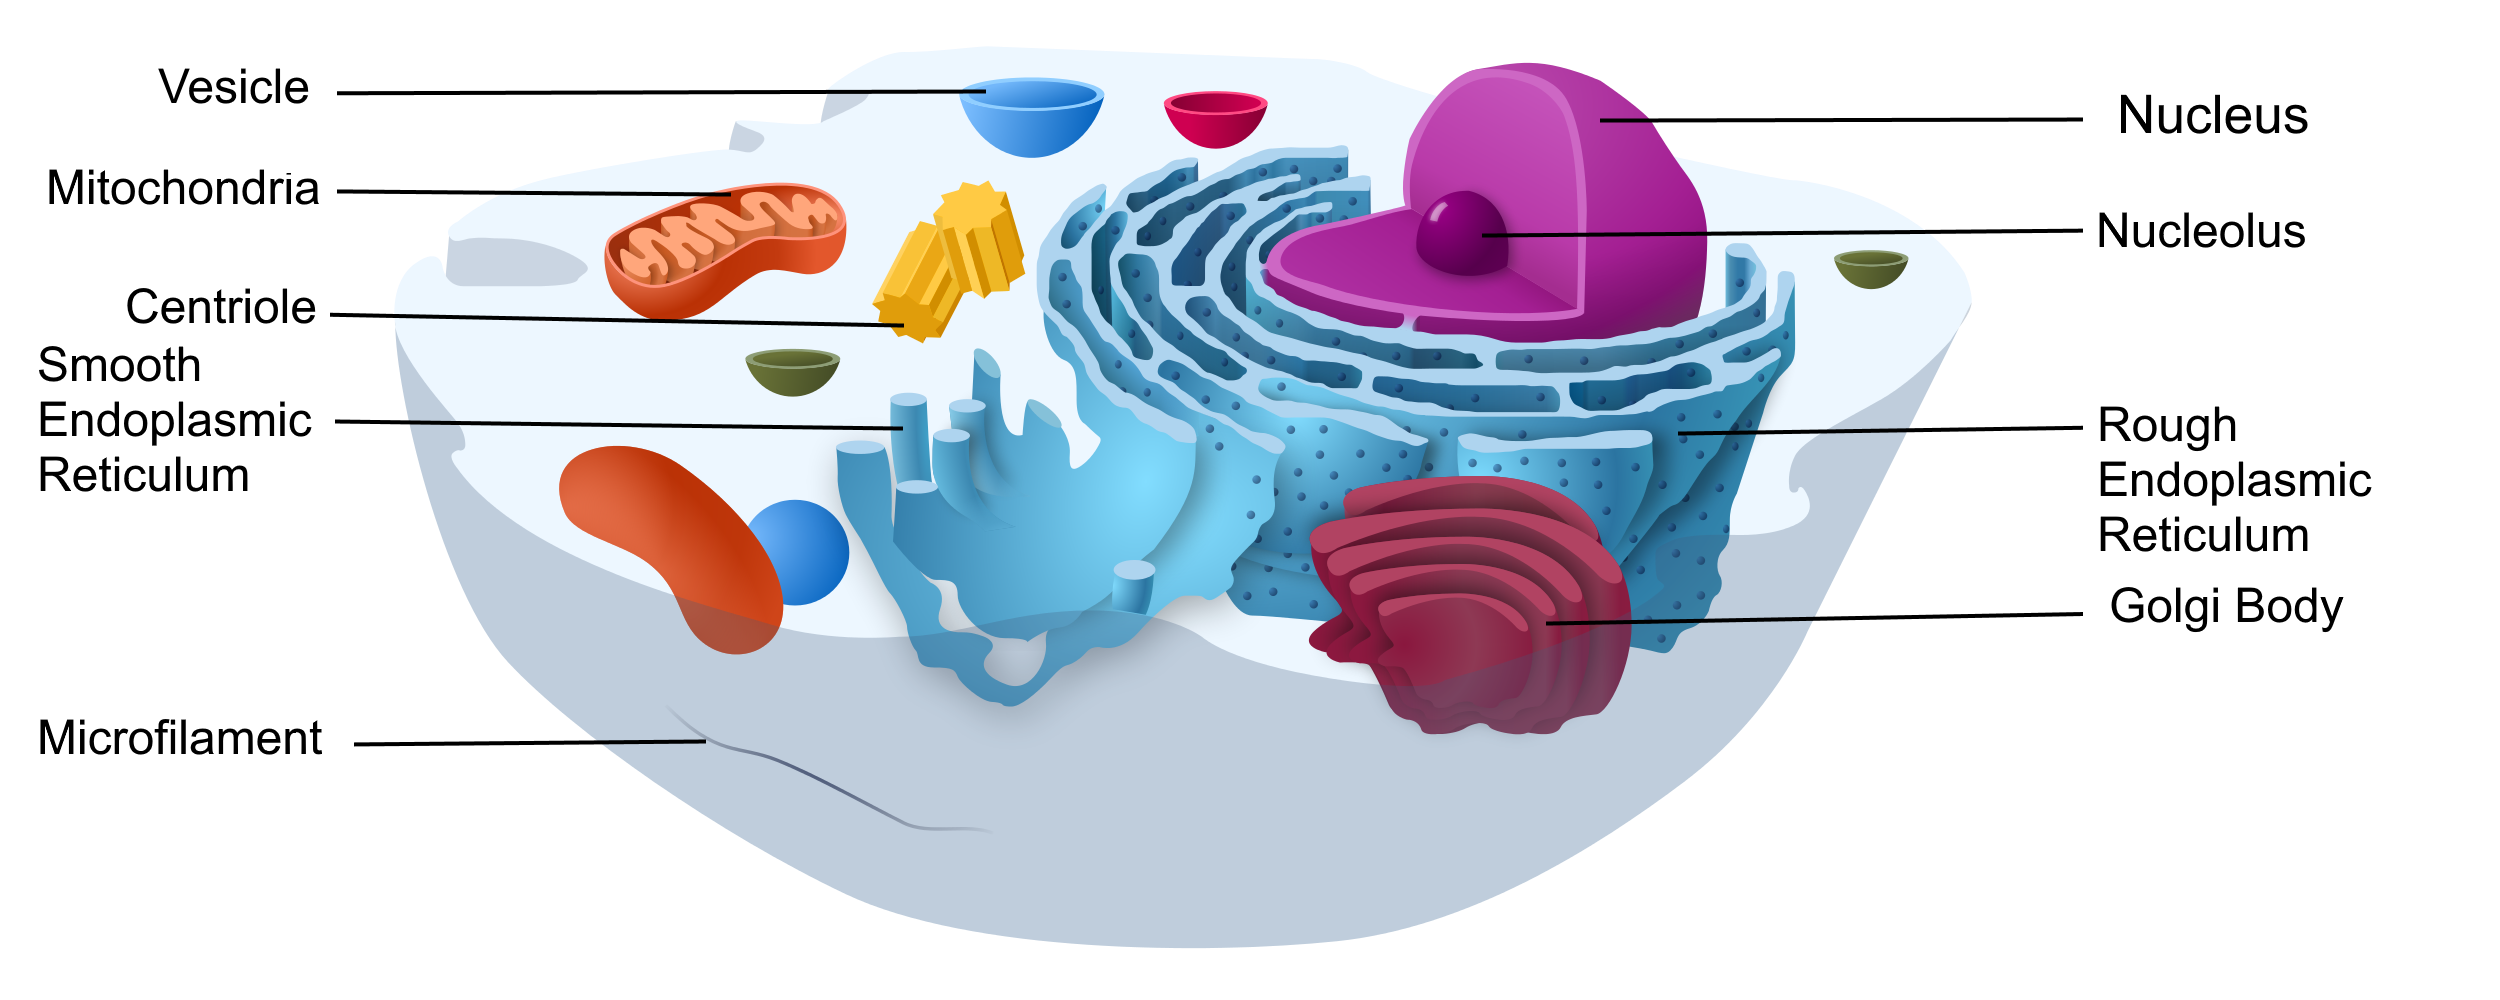 Image shows a diagram of a eukaryotic cell. The cell has many organelles labelled, including: nucleus, nucleolus, rough endoplasmic reticulum, smooth endoplasmic reticulum, Golgi body, vesicles, mitochondria and centrioles.